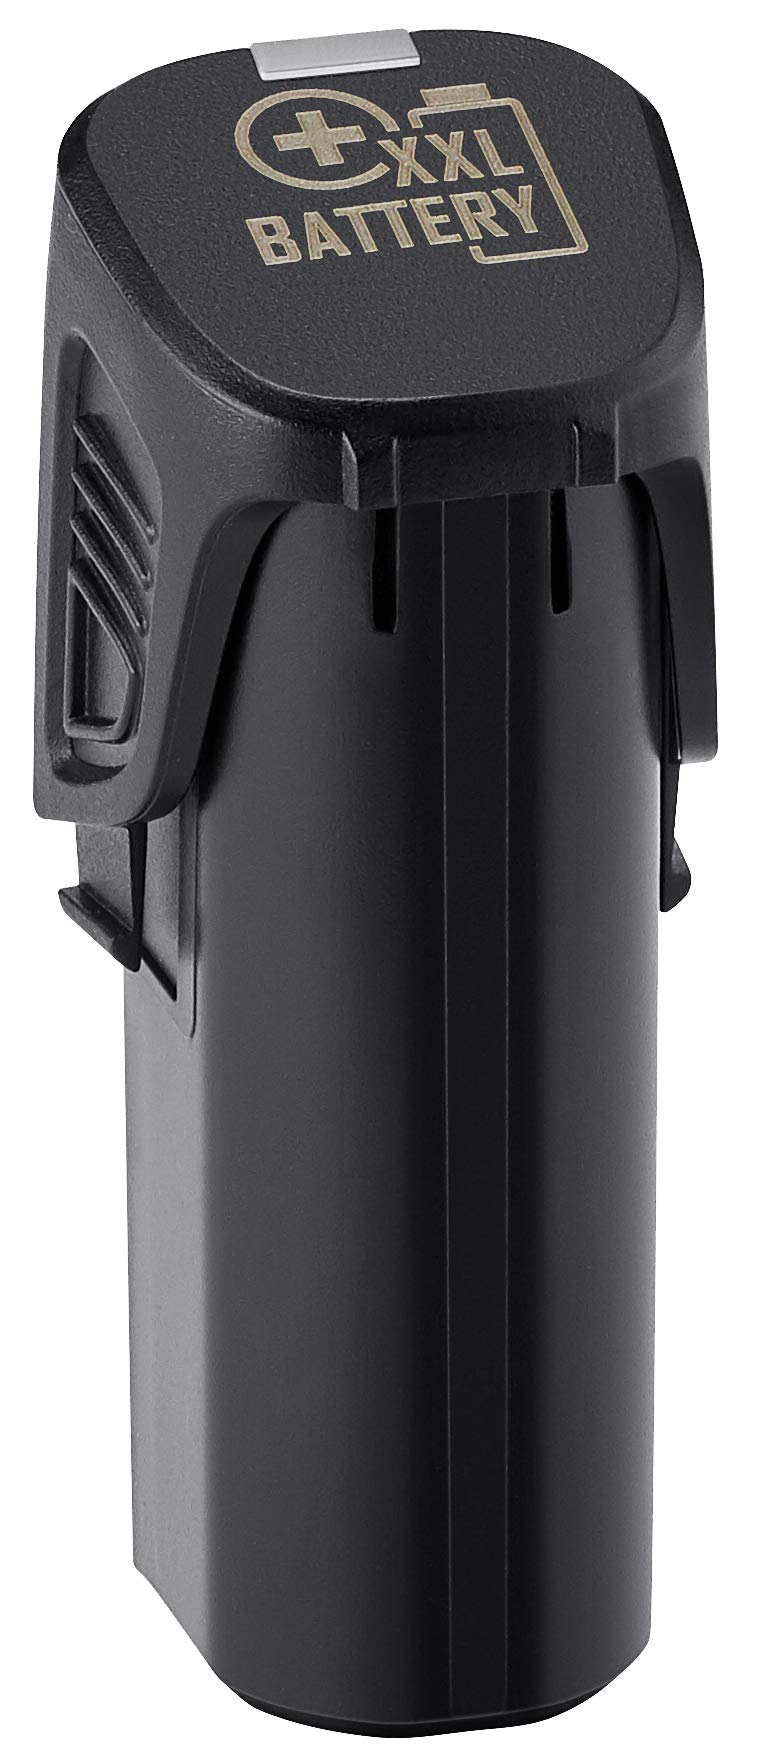 Wahl Professional Animal XXL Replacement Battery for The Wahl Creativa Cordless Pet Clipper (#41876-7100) by Wahl Professional Animal